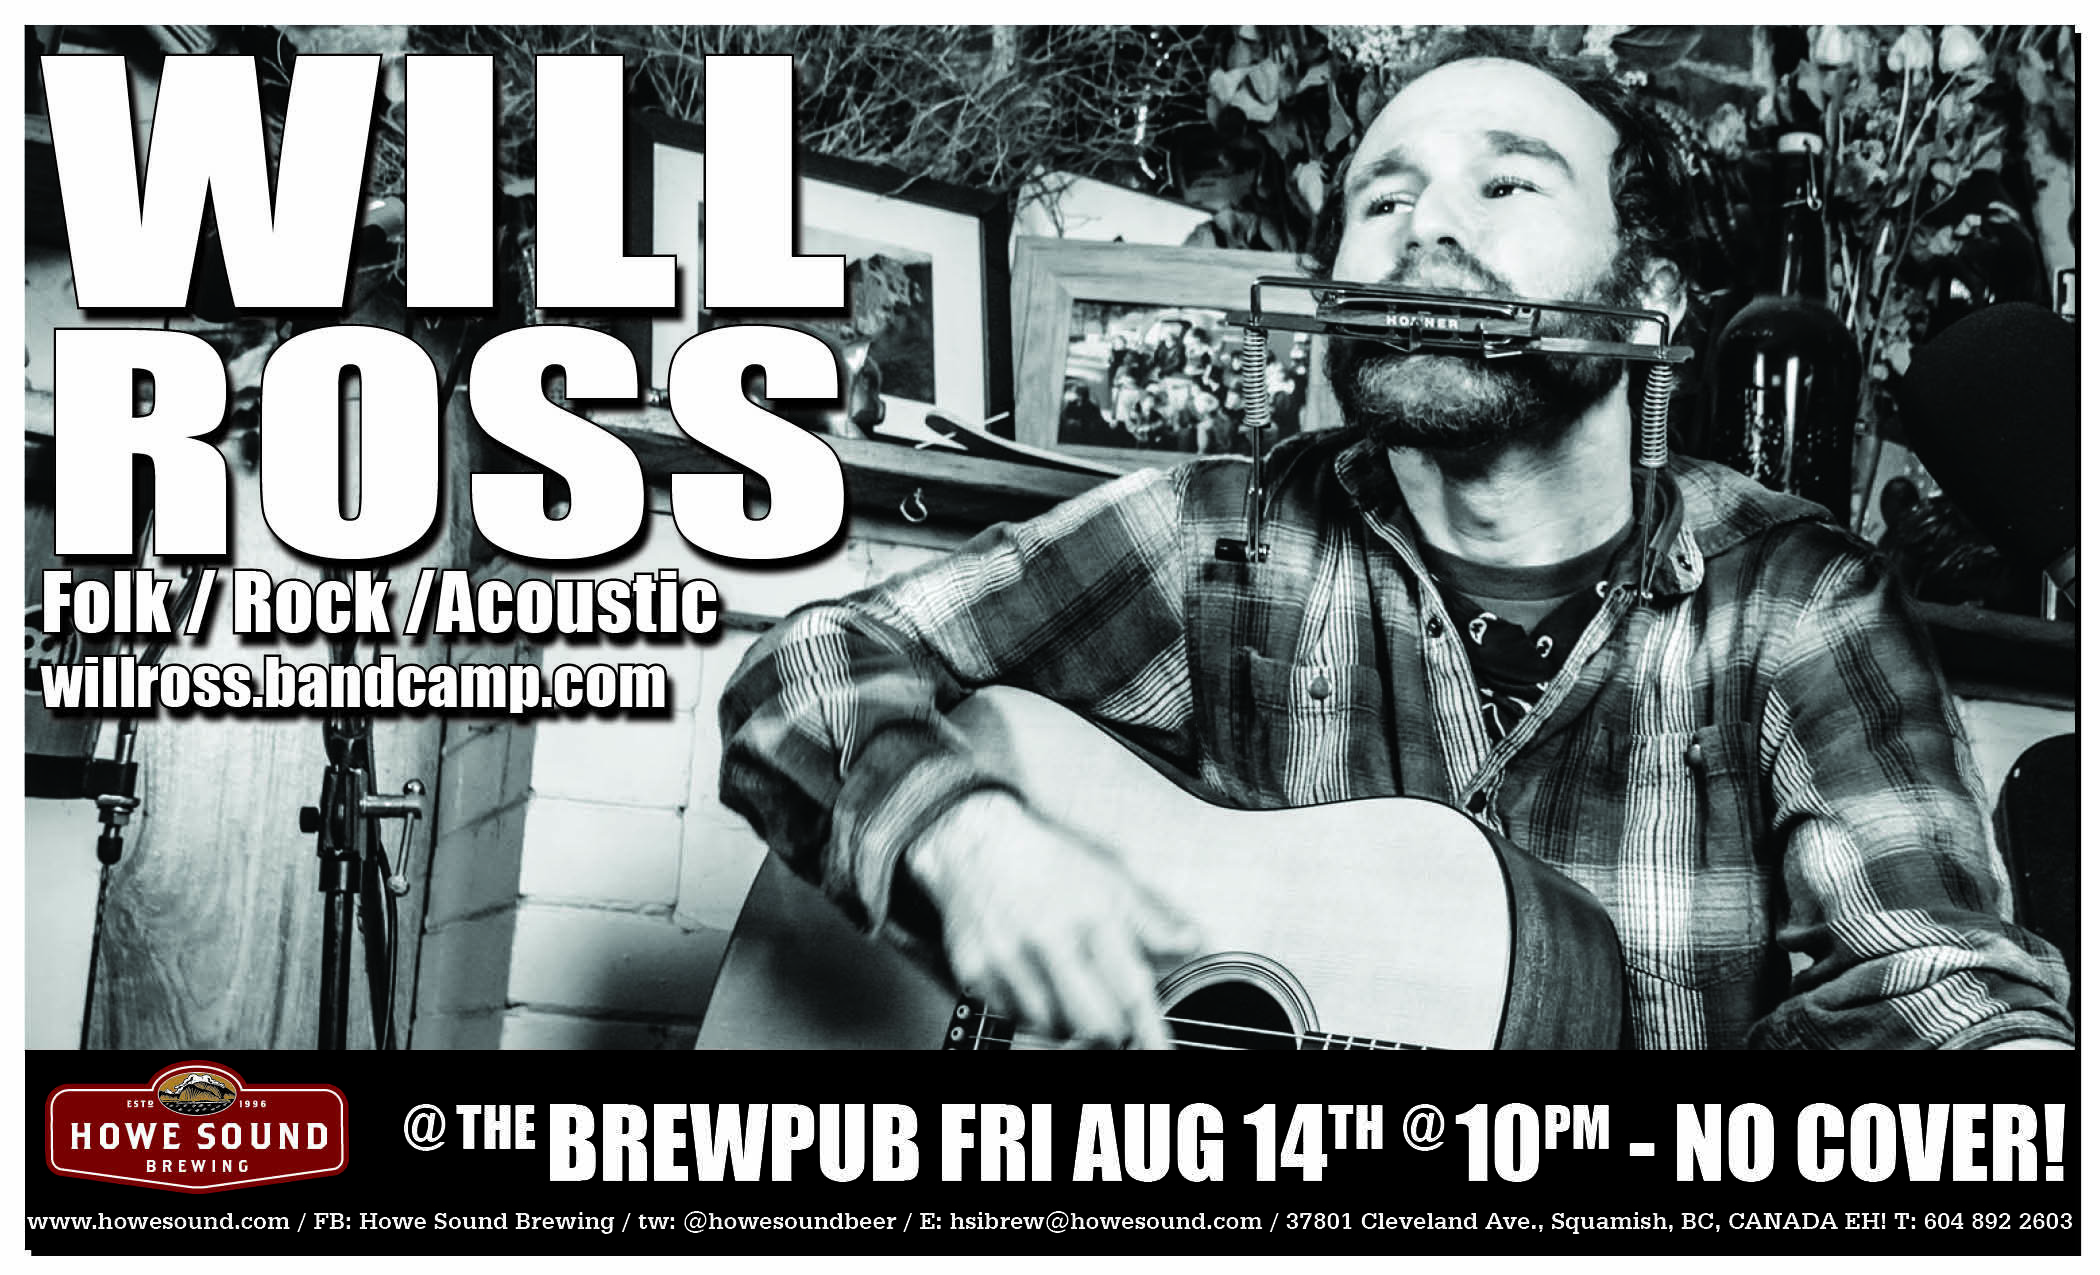 Friday August 14 at 10 pm - Will Ross at the Howe Sound Brew Pub